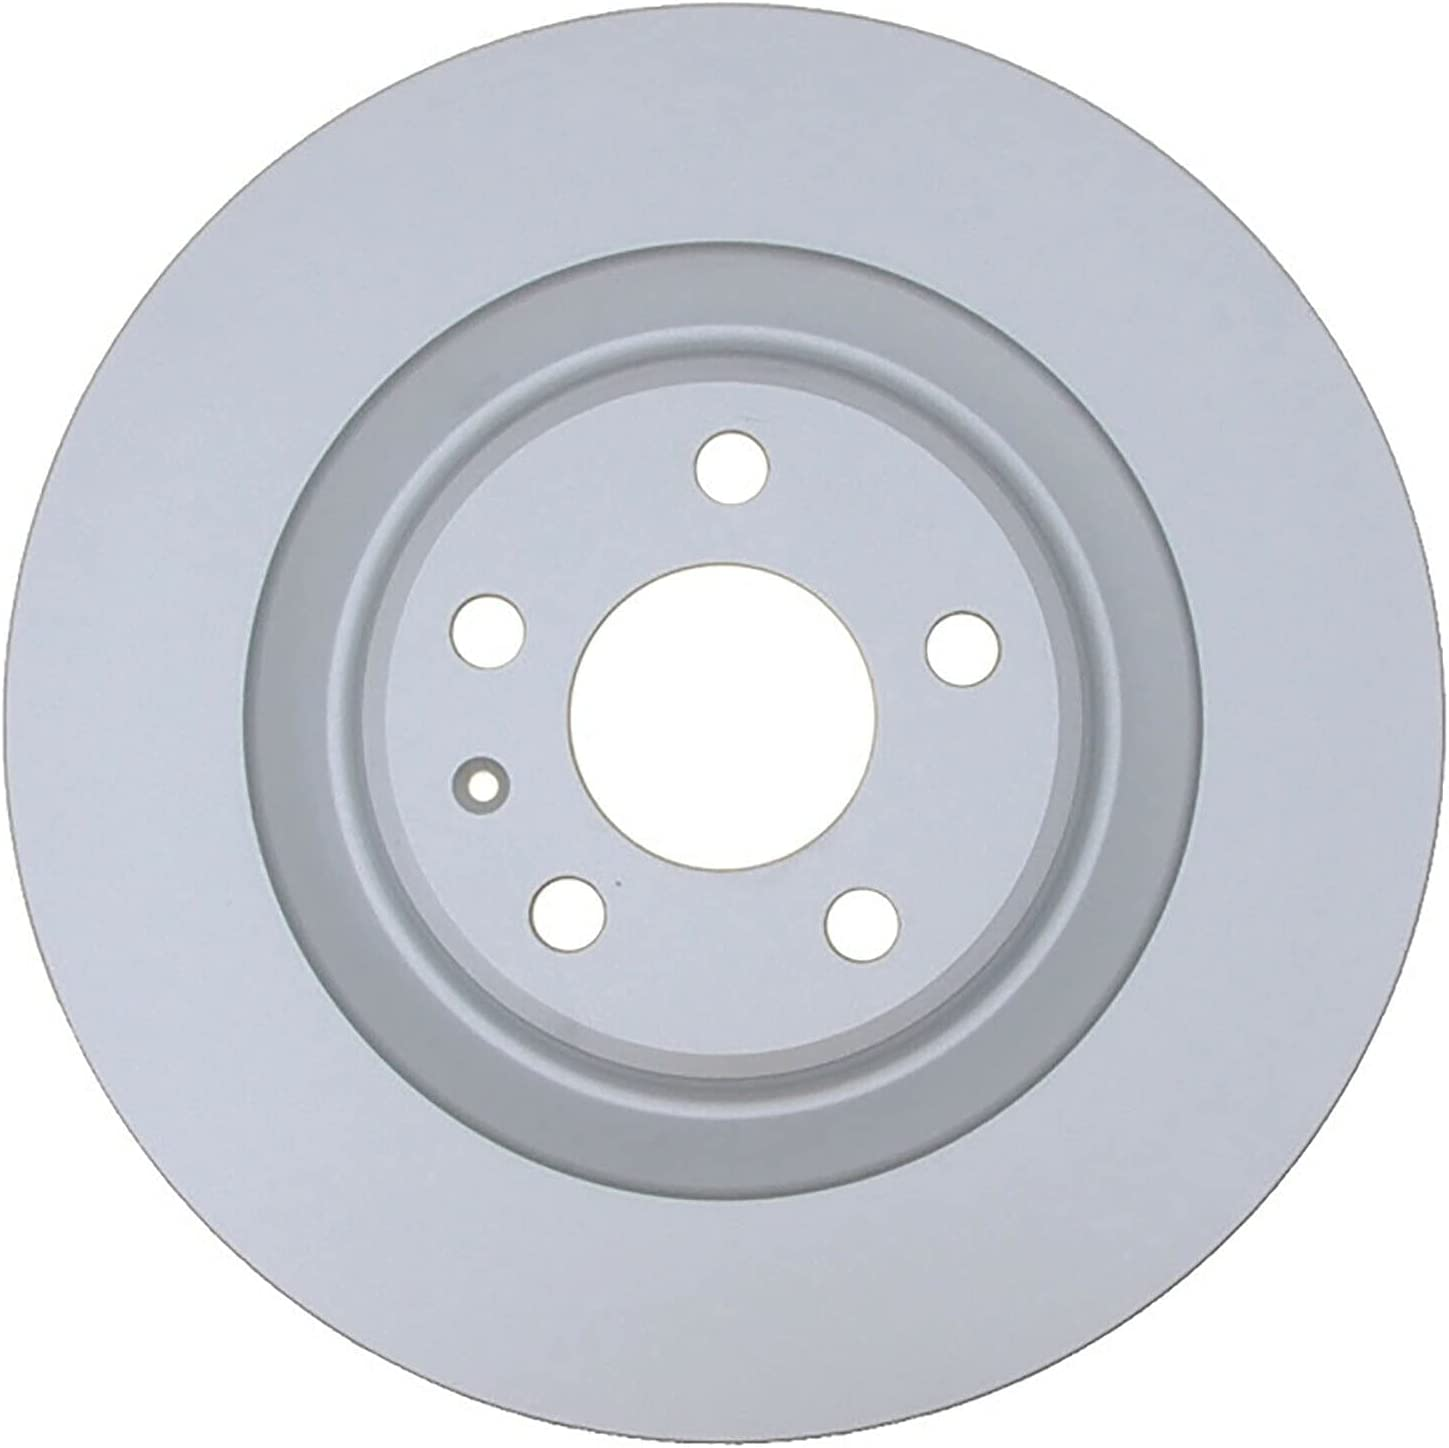 Rear Brake Rotor Compatible with 11-20 Audi Directly Max 67% OFF managed store Porsche Models